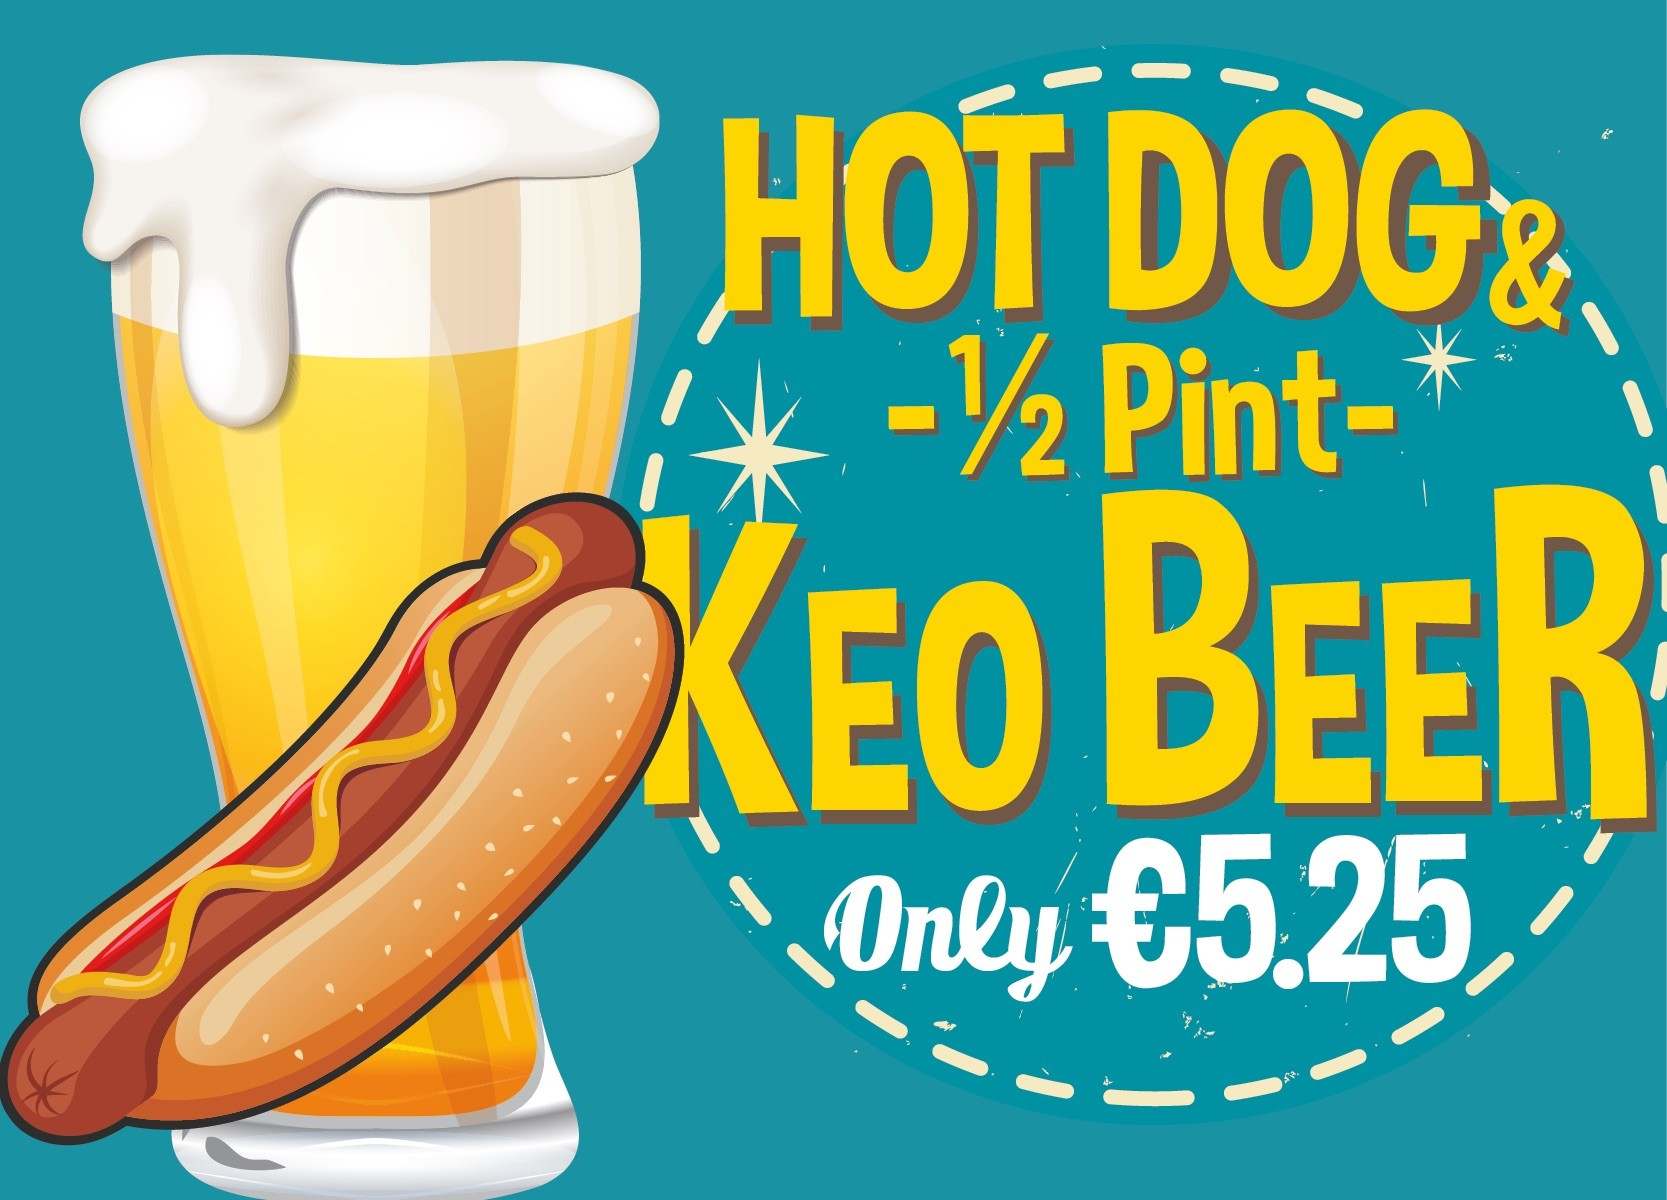 Special offer: Get a hot dog and a half pint of keo beer for only €5.25